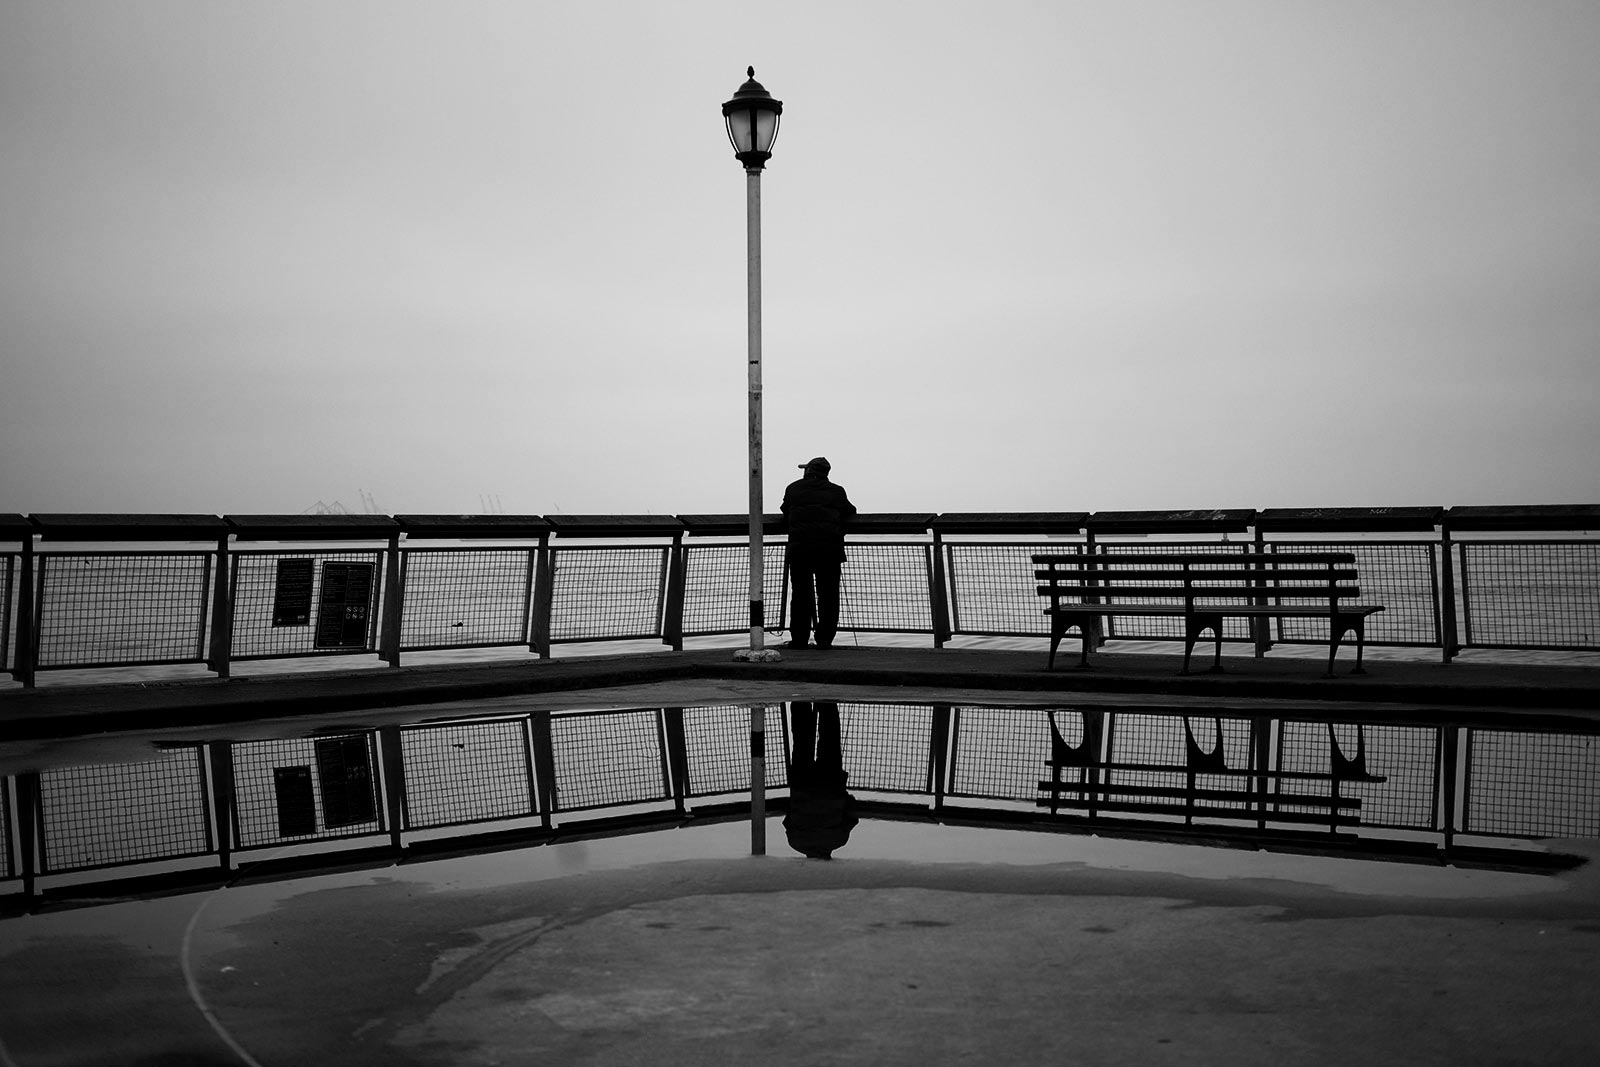 man-at-railing-on-harbor-in-fog